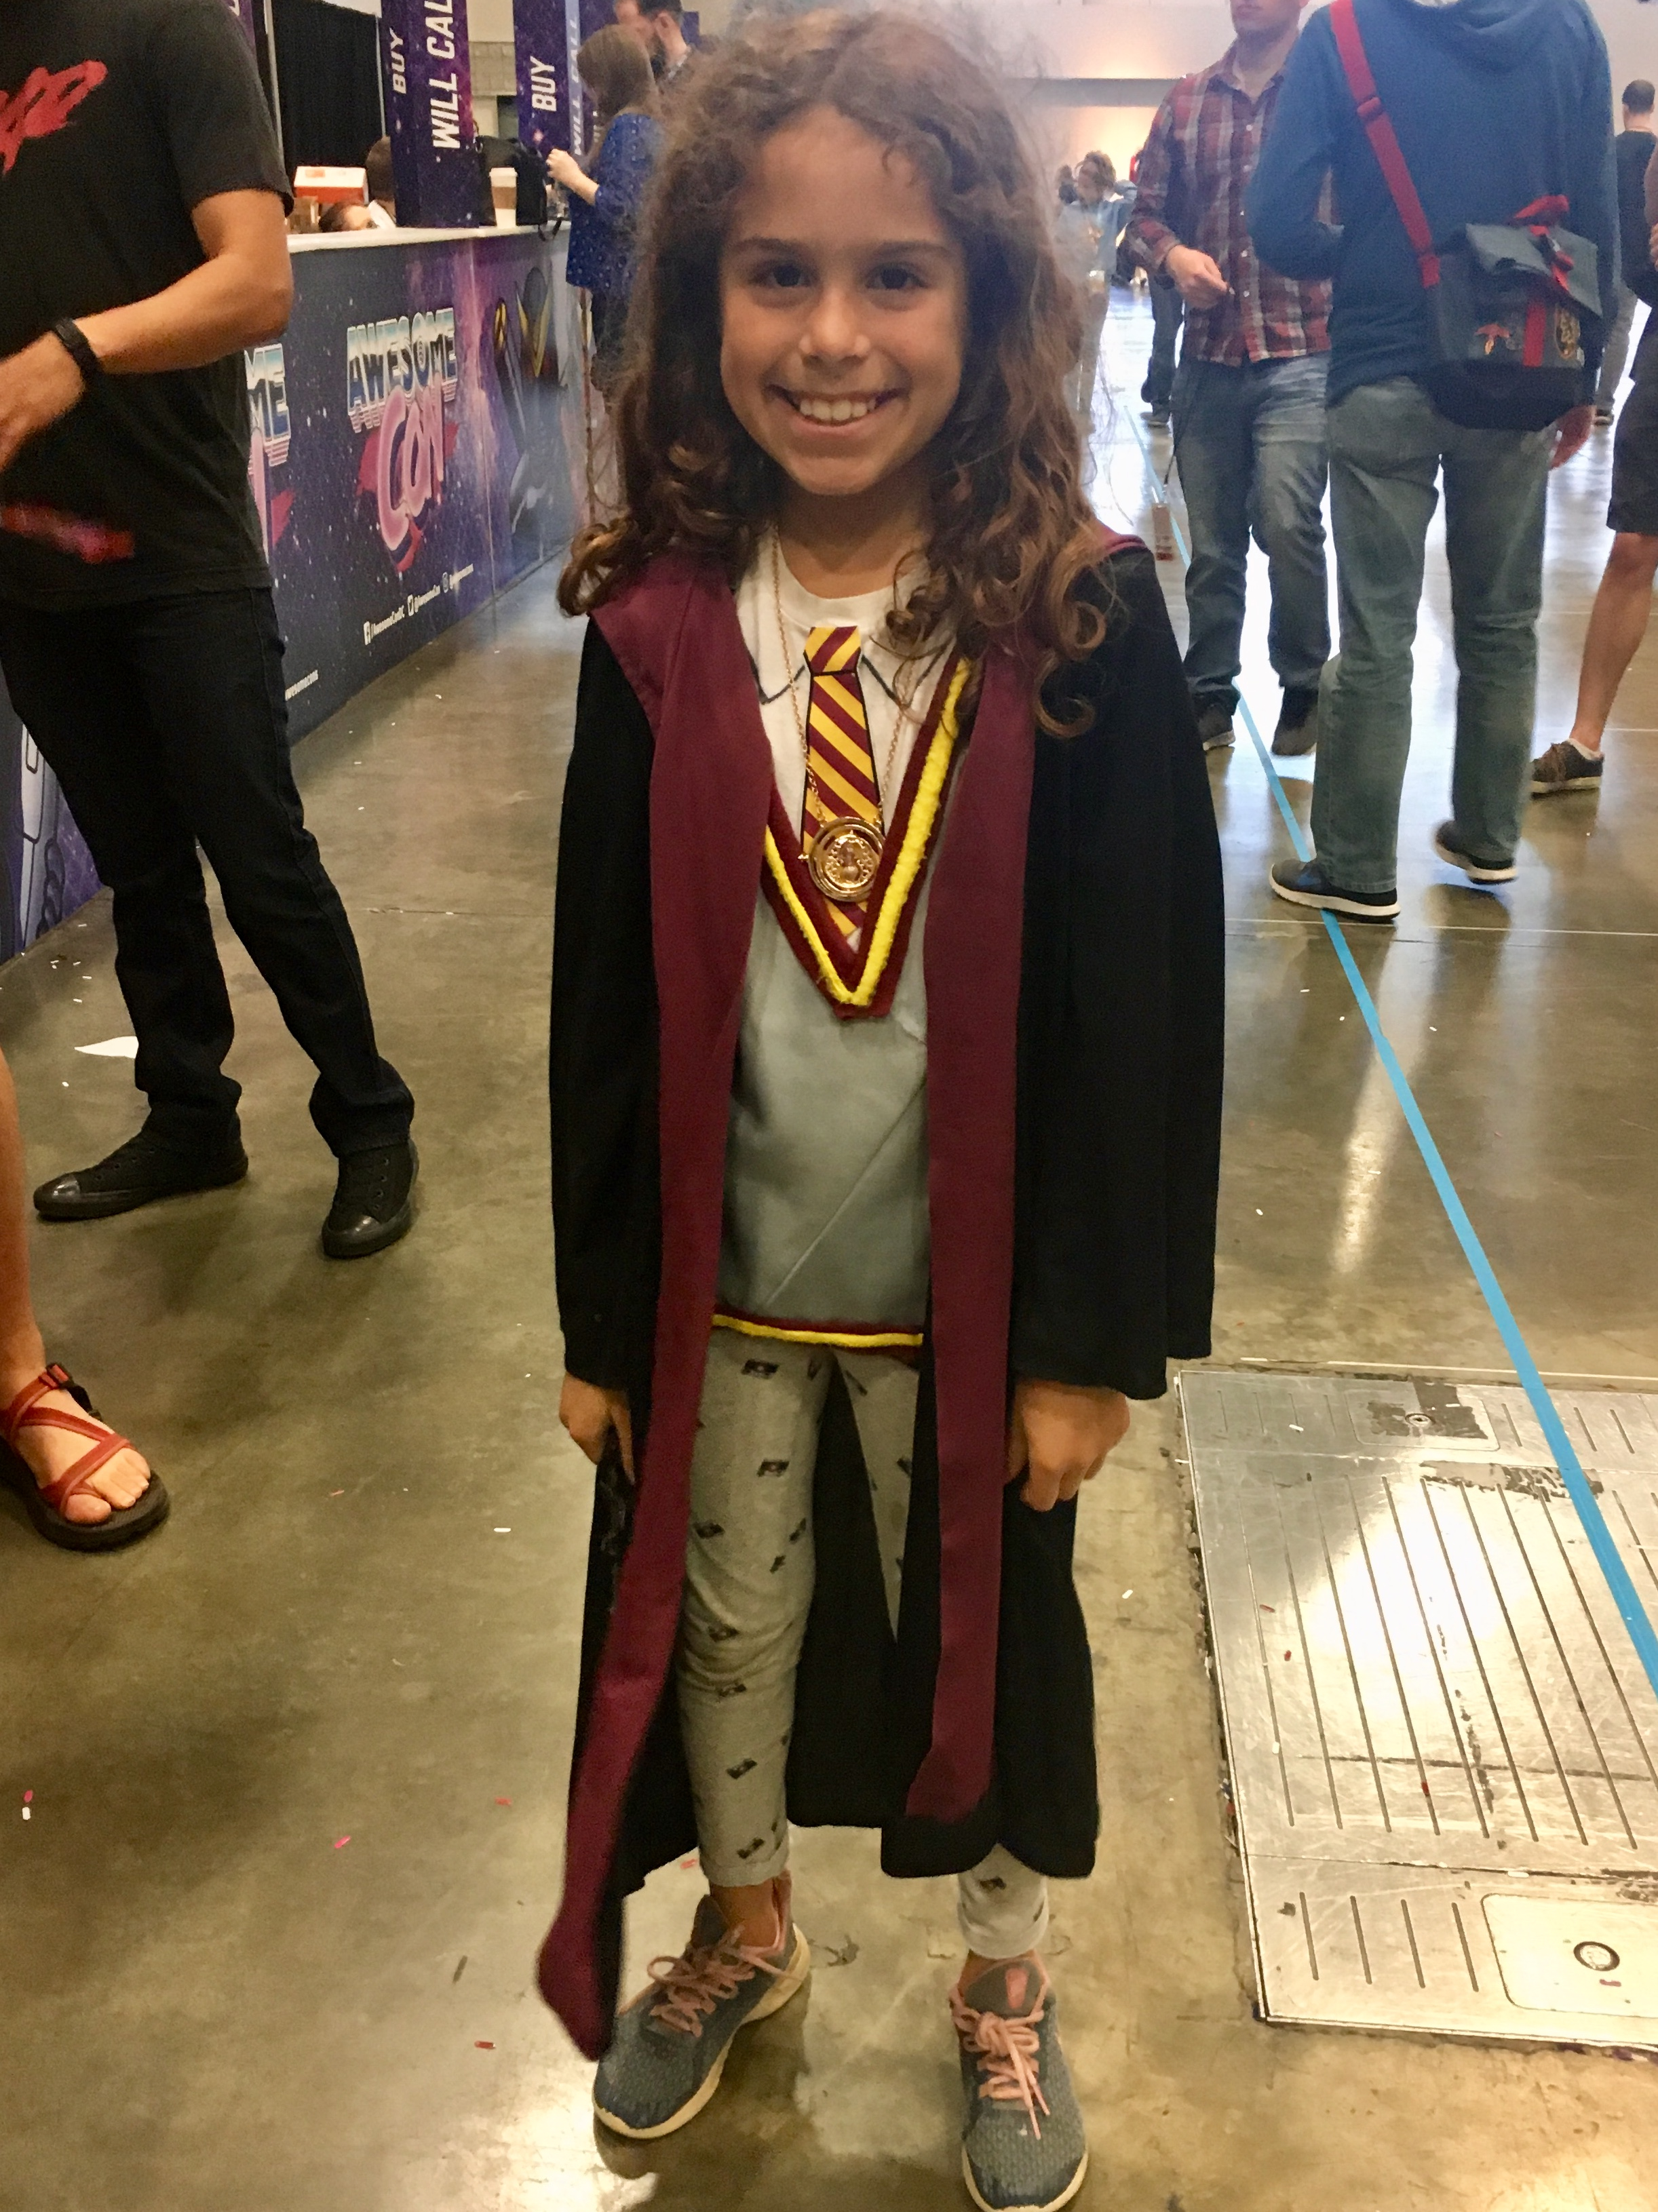 An adorable Hermione, complete with Time-Turner!